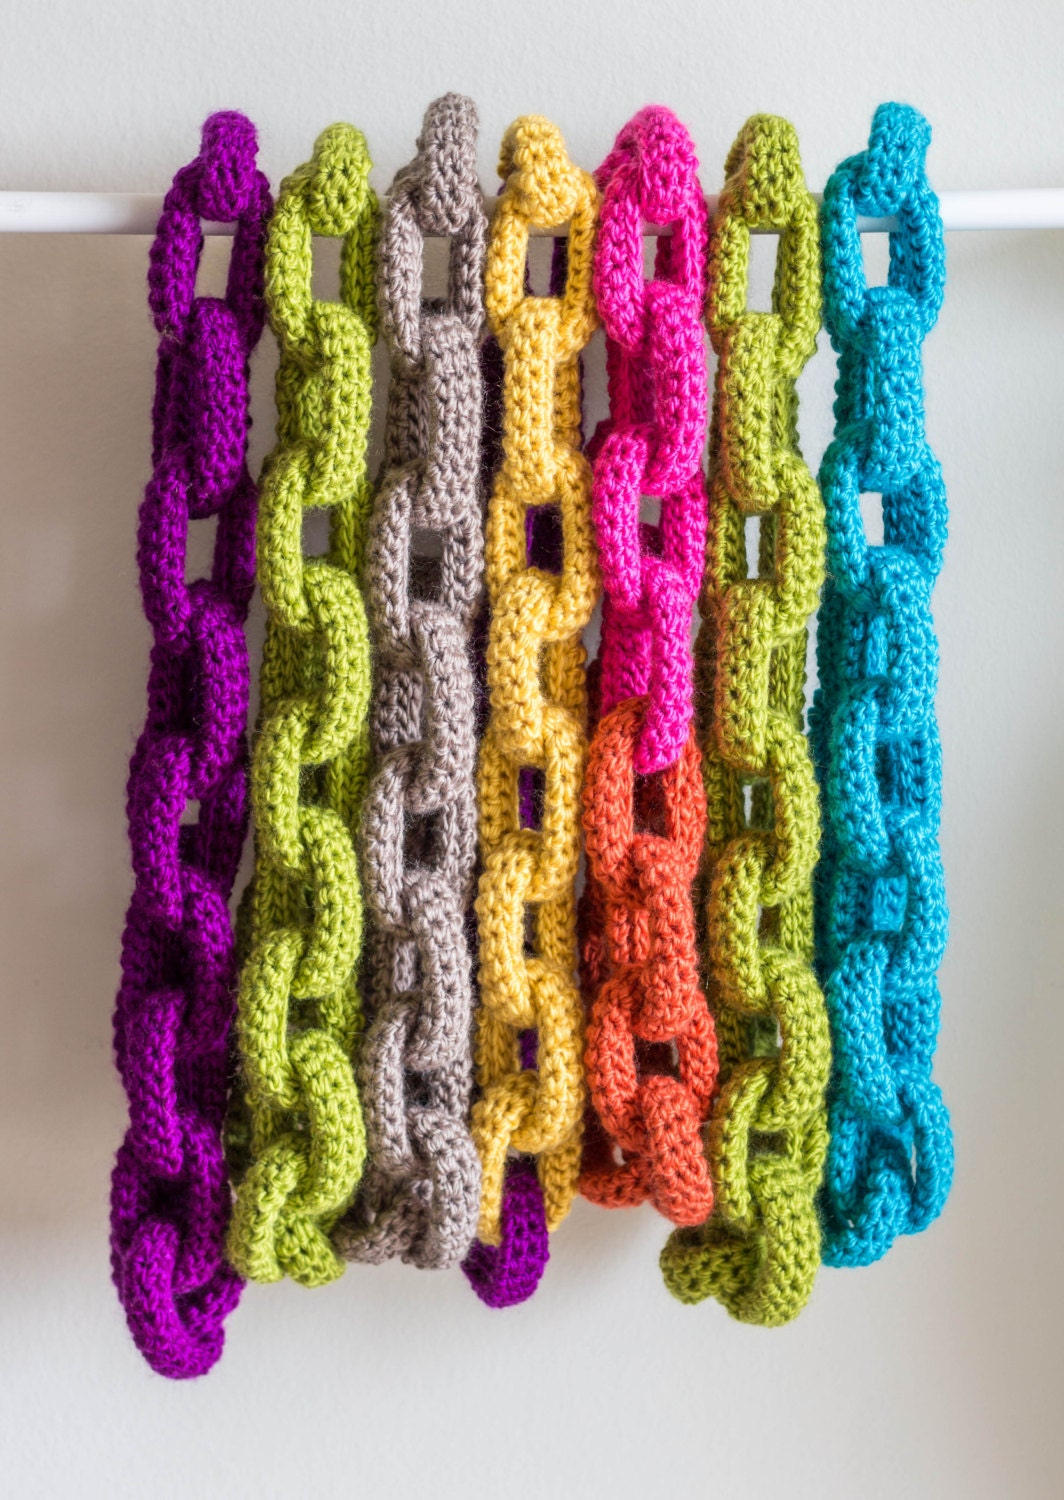 Crocheting Scarves : Chain Link Scarf Crochet Pattern Crochet Scarf by KnitsForLife